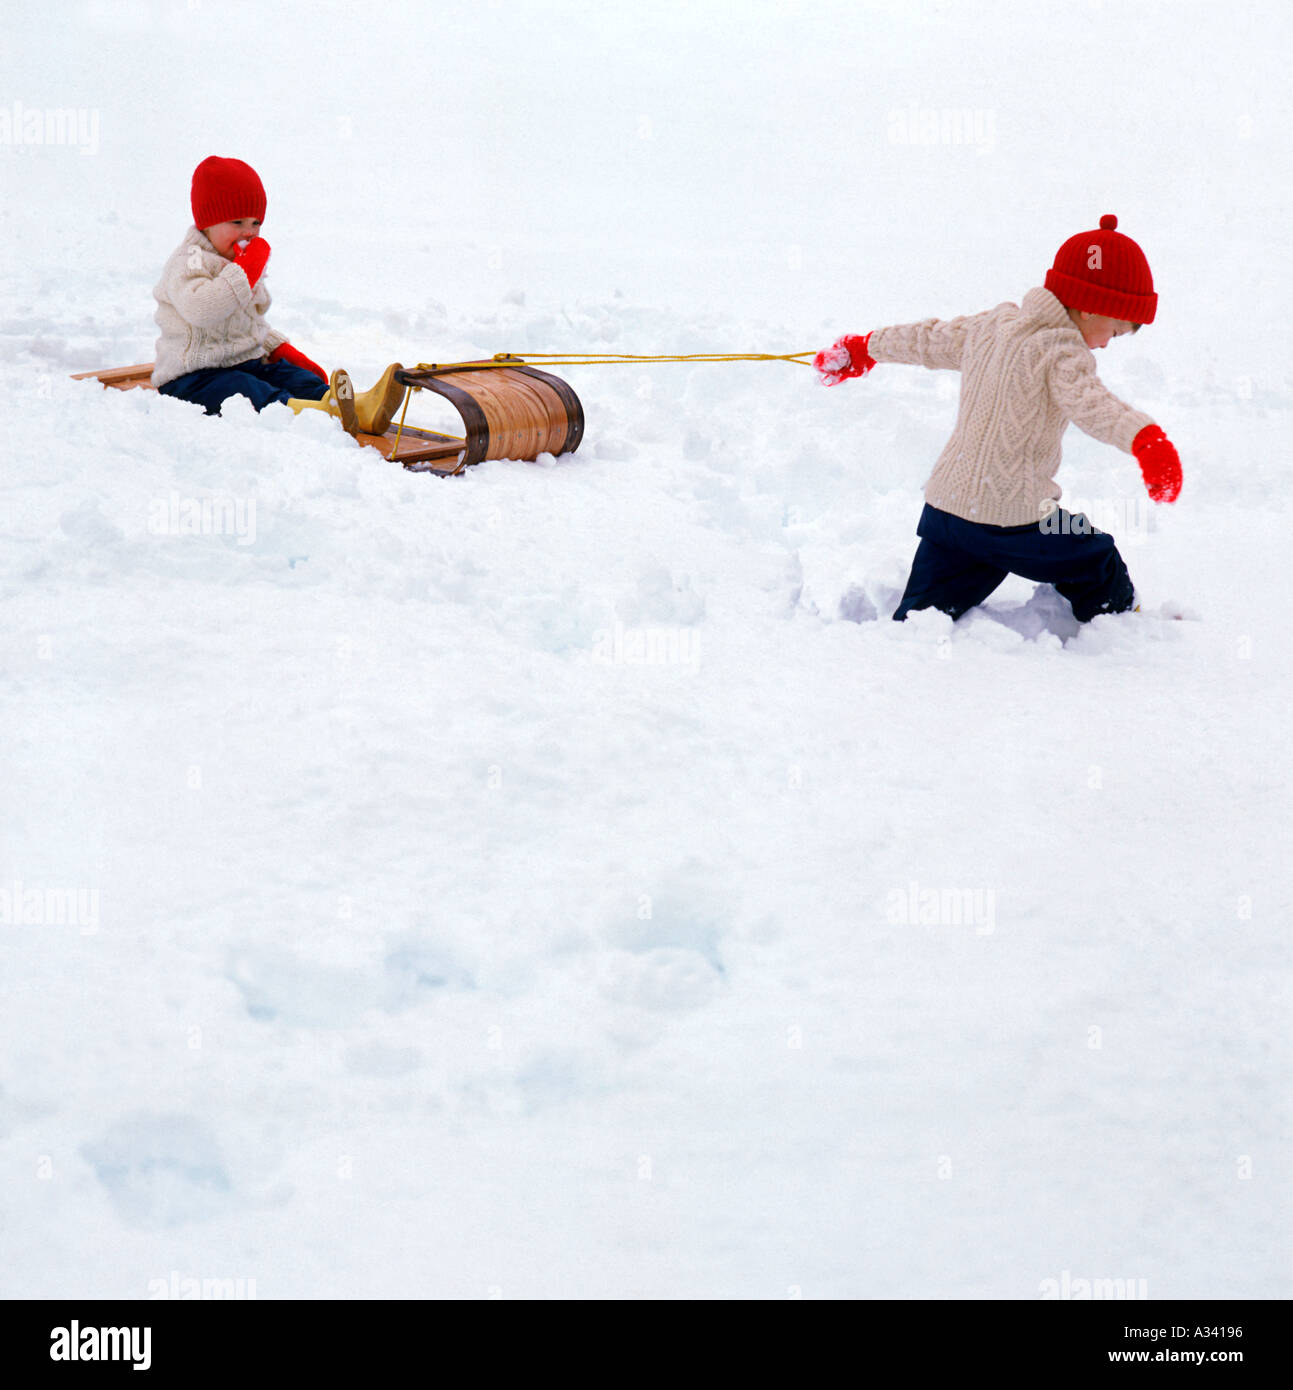 a young child pulling another child on a toboggan type sled